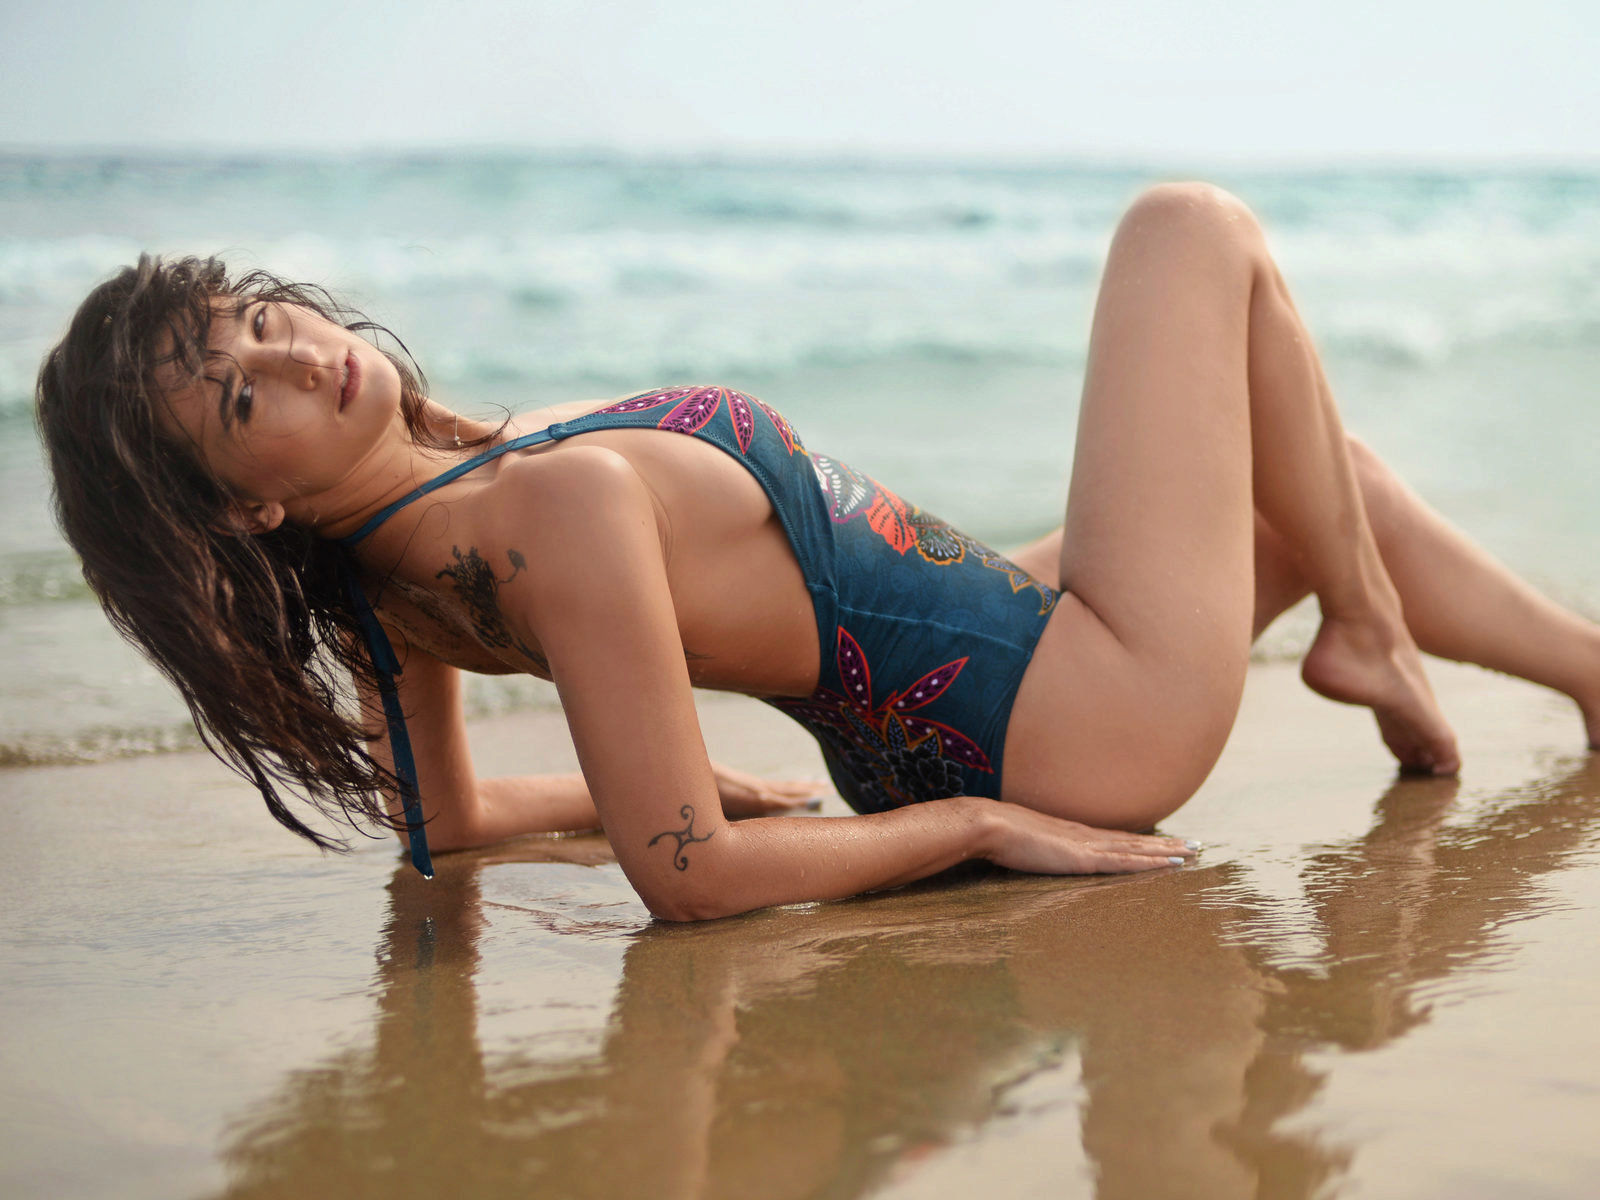 swimsuit issue with camgirl baylee lo...